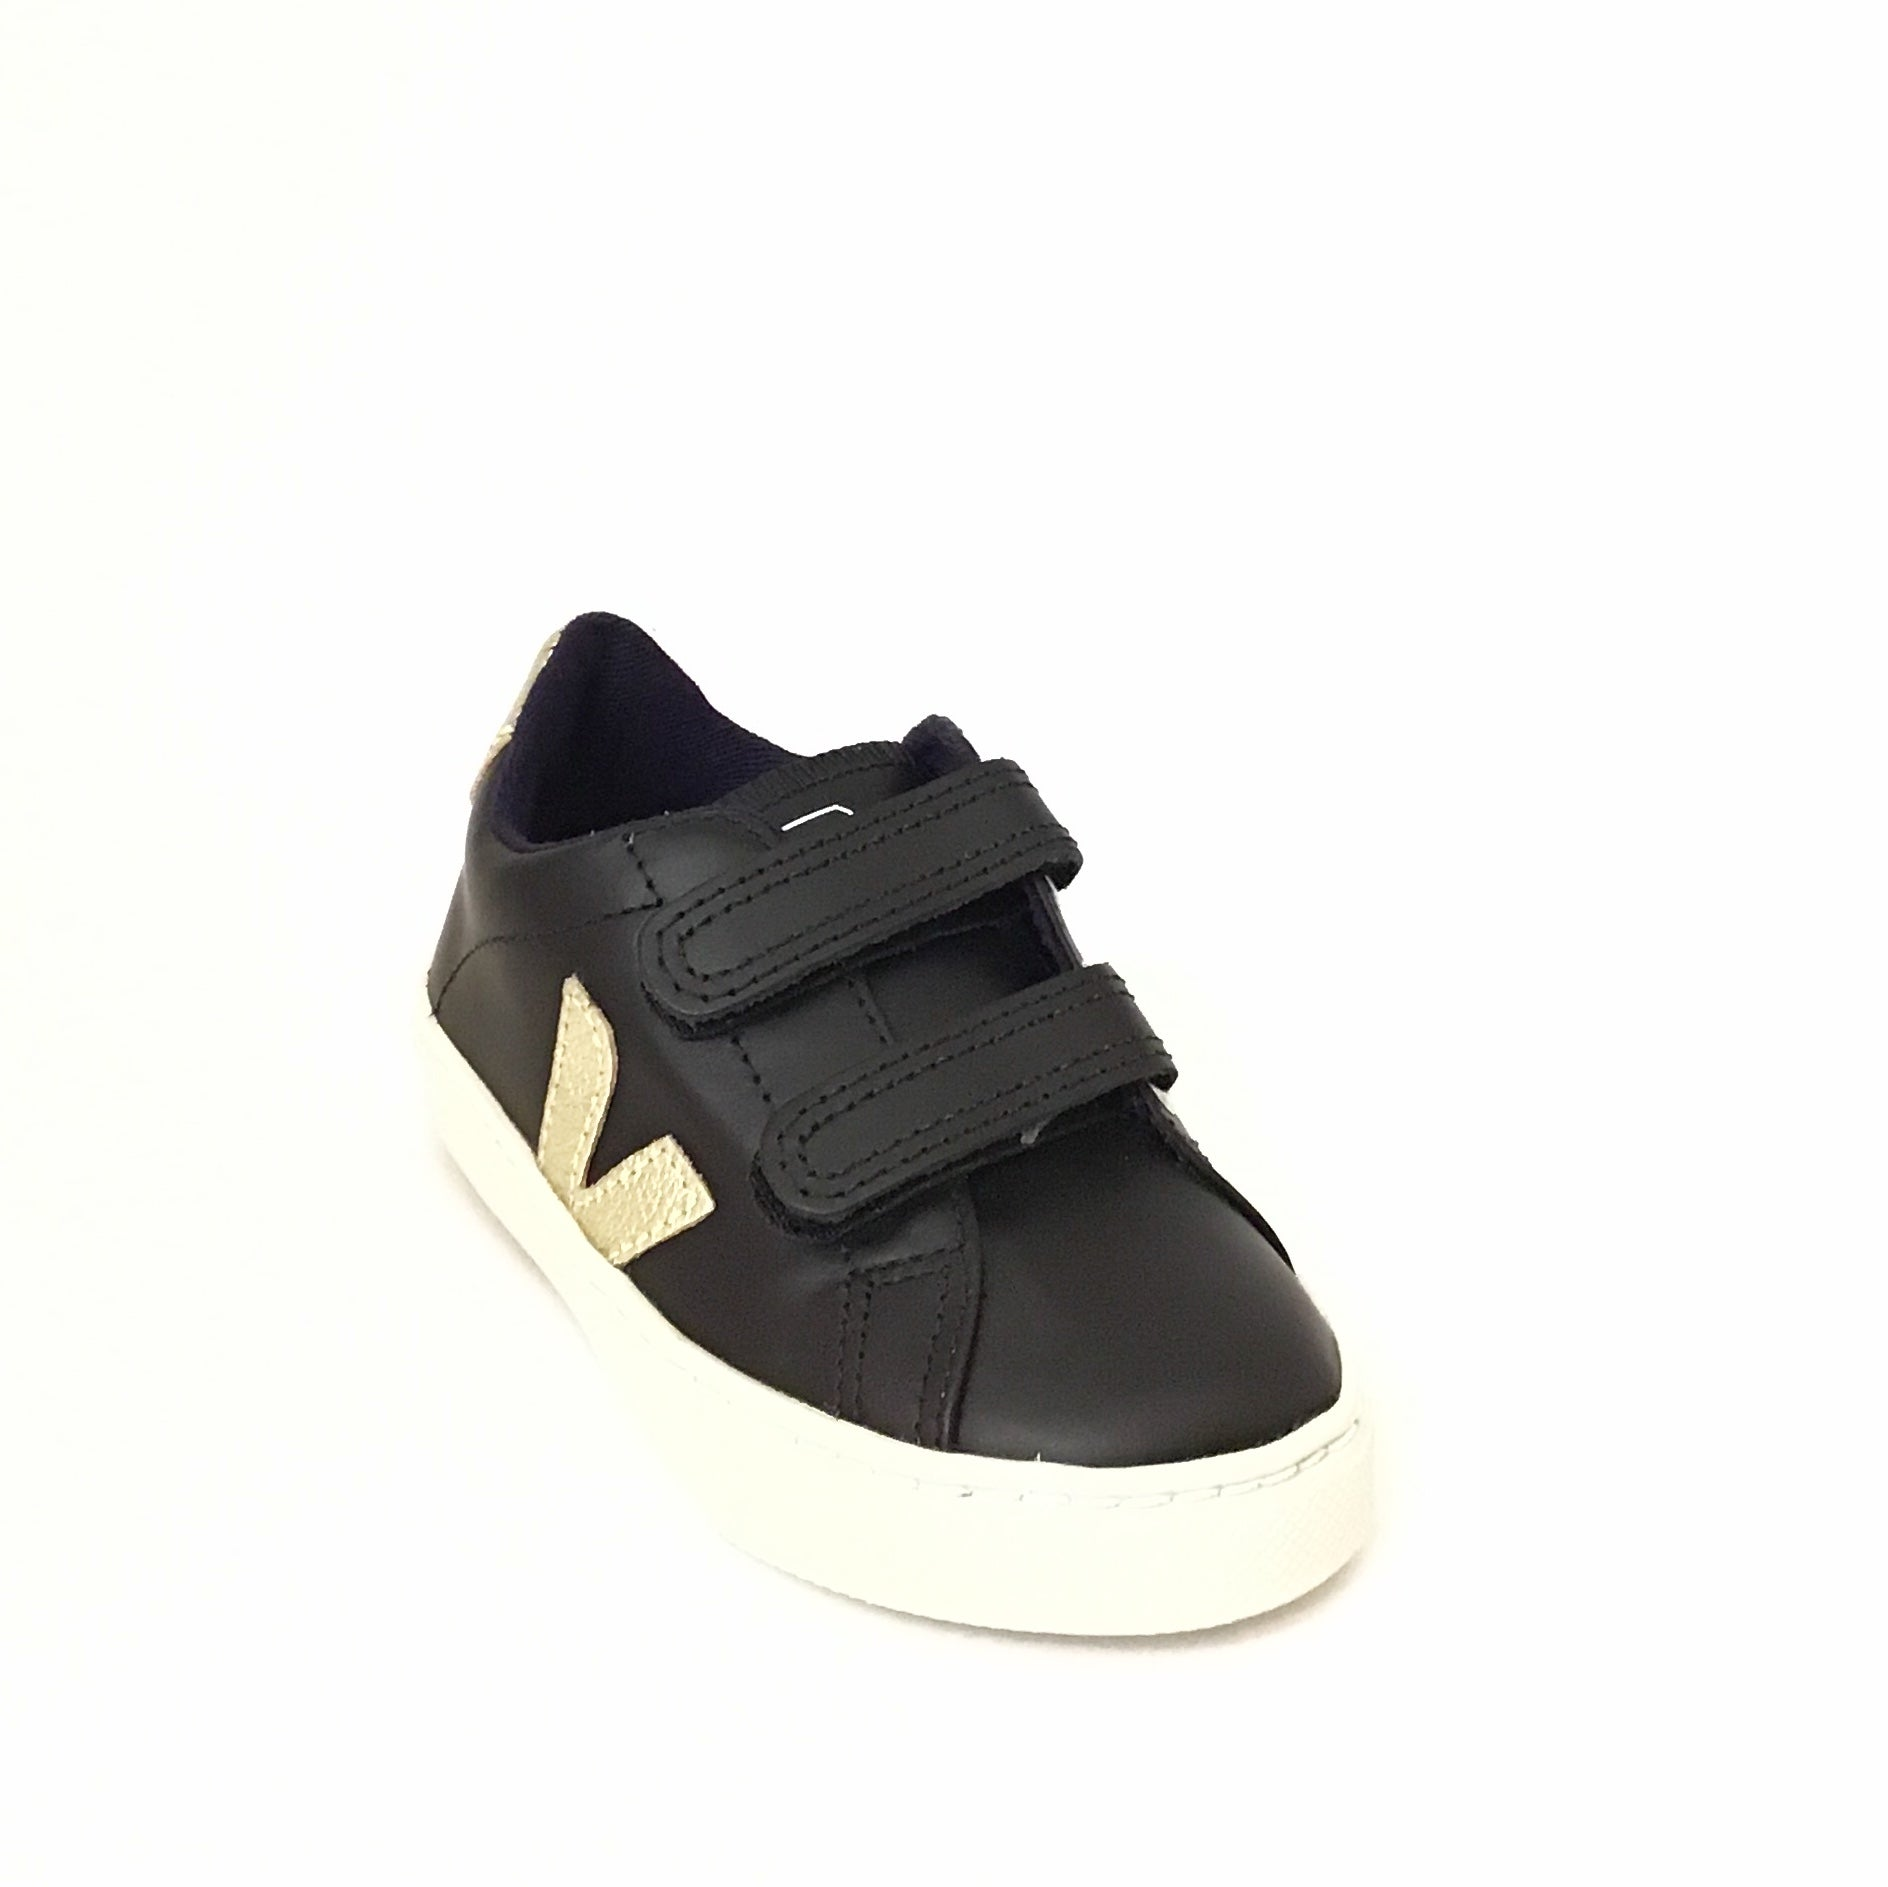 Veja Black Sneaker with Gold Trim